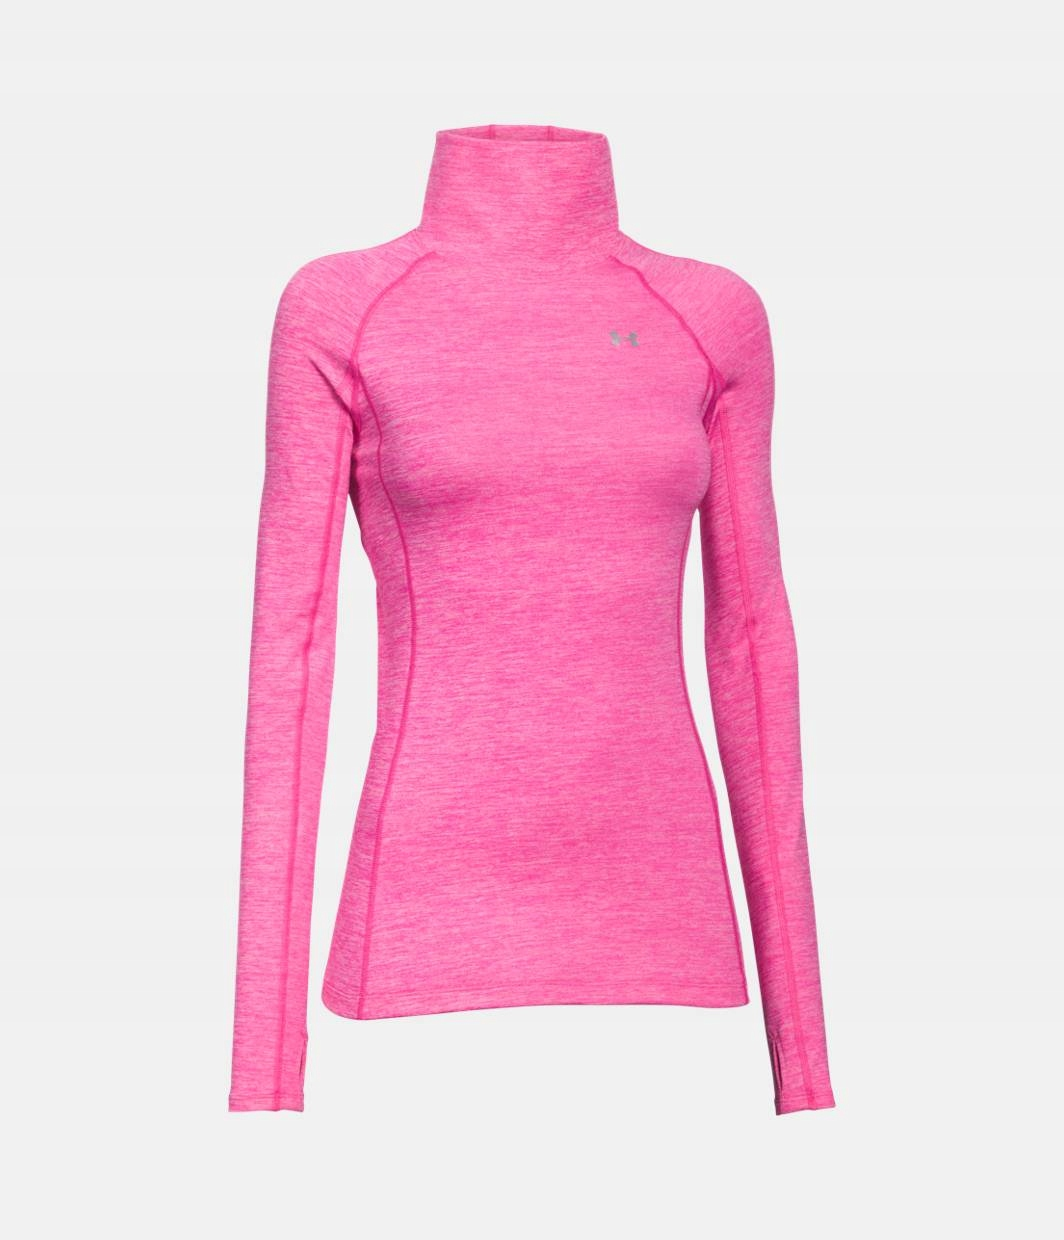 K2878 NOWA BLUZA UNDER ARMOUR COLDGEAR FITTED S